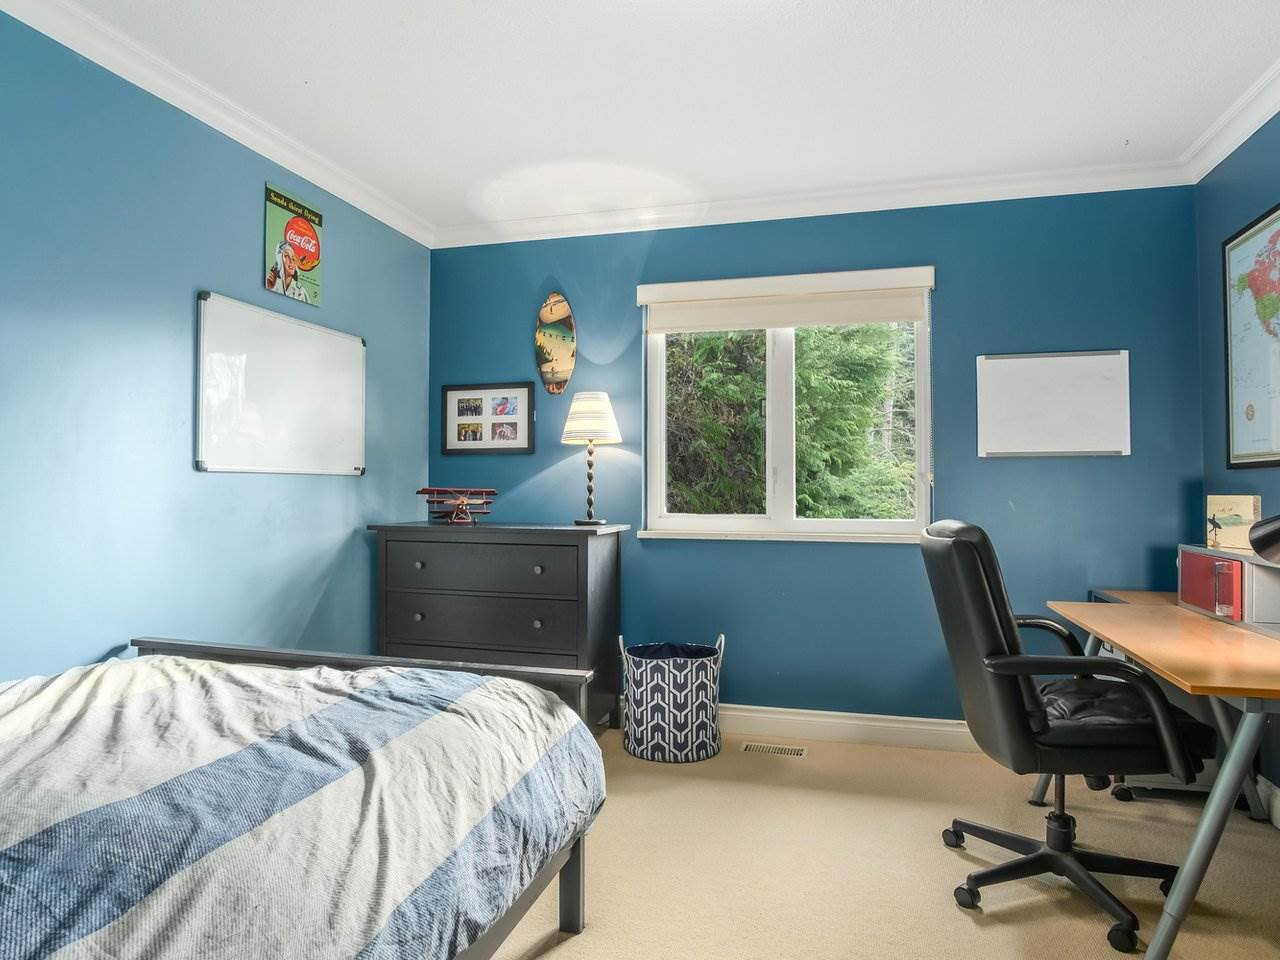 Photo 18: Photos: 5477 CLIFFRIDGE Avenue in North Vancouver: Canyon Heights NV House for sale : MLS®# R2500812